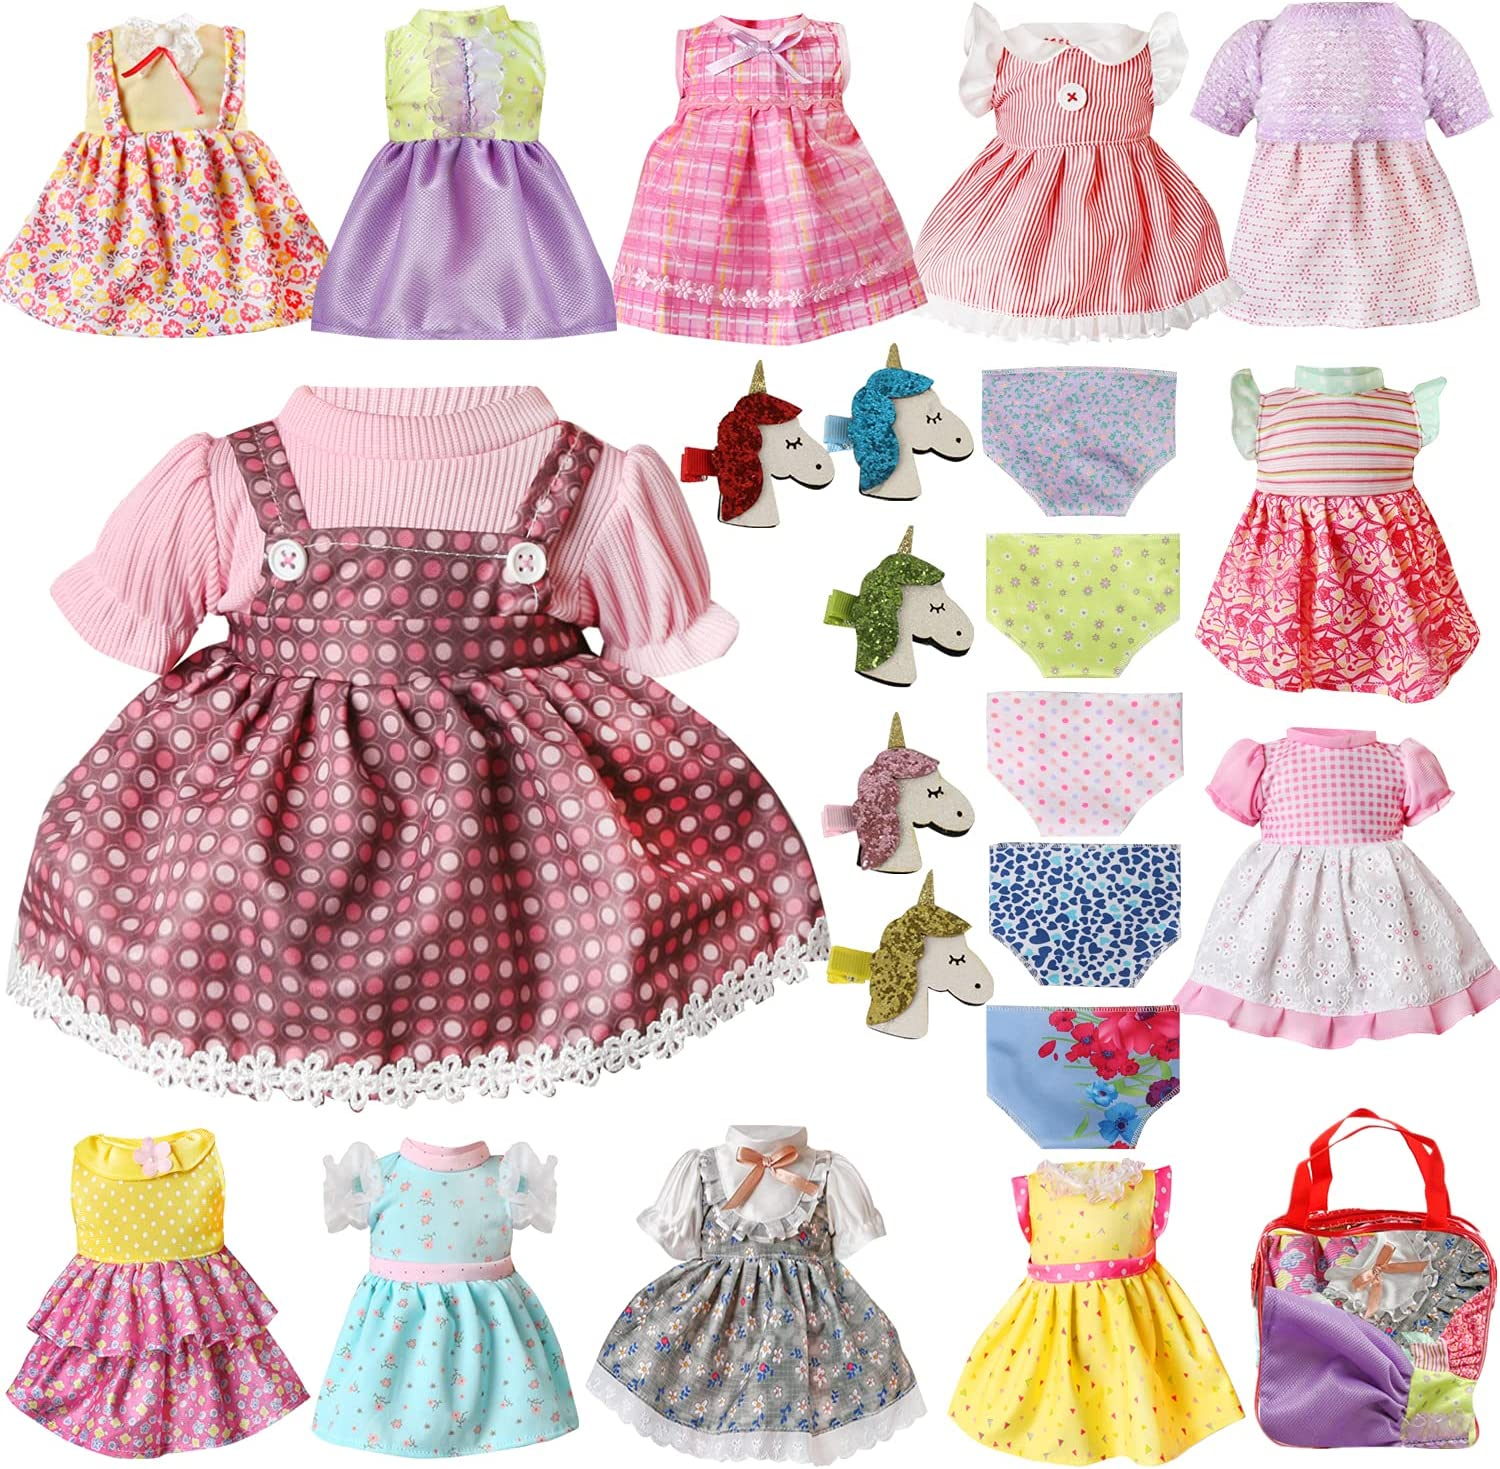 Voccim 22 Pcs Doll Clothes Baby Seasonal Wrap Introduction for Alive Clothing Ranking TOP13 Outfits